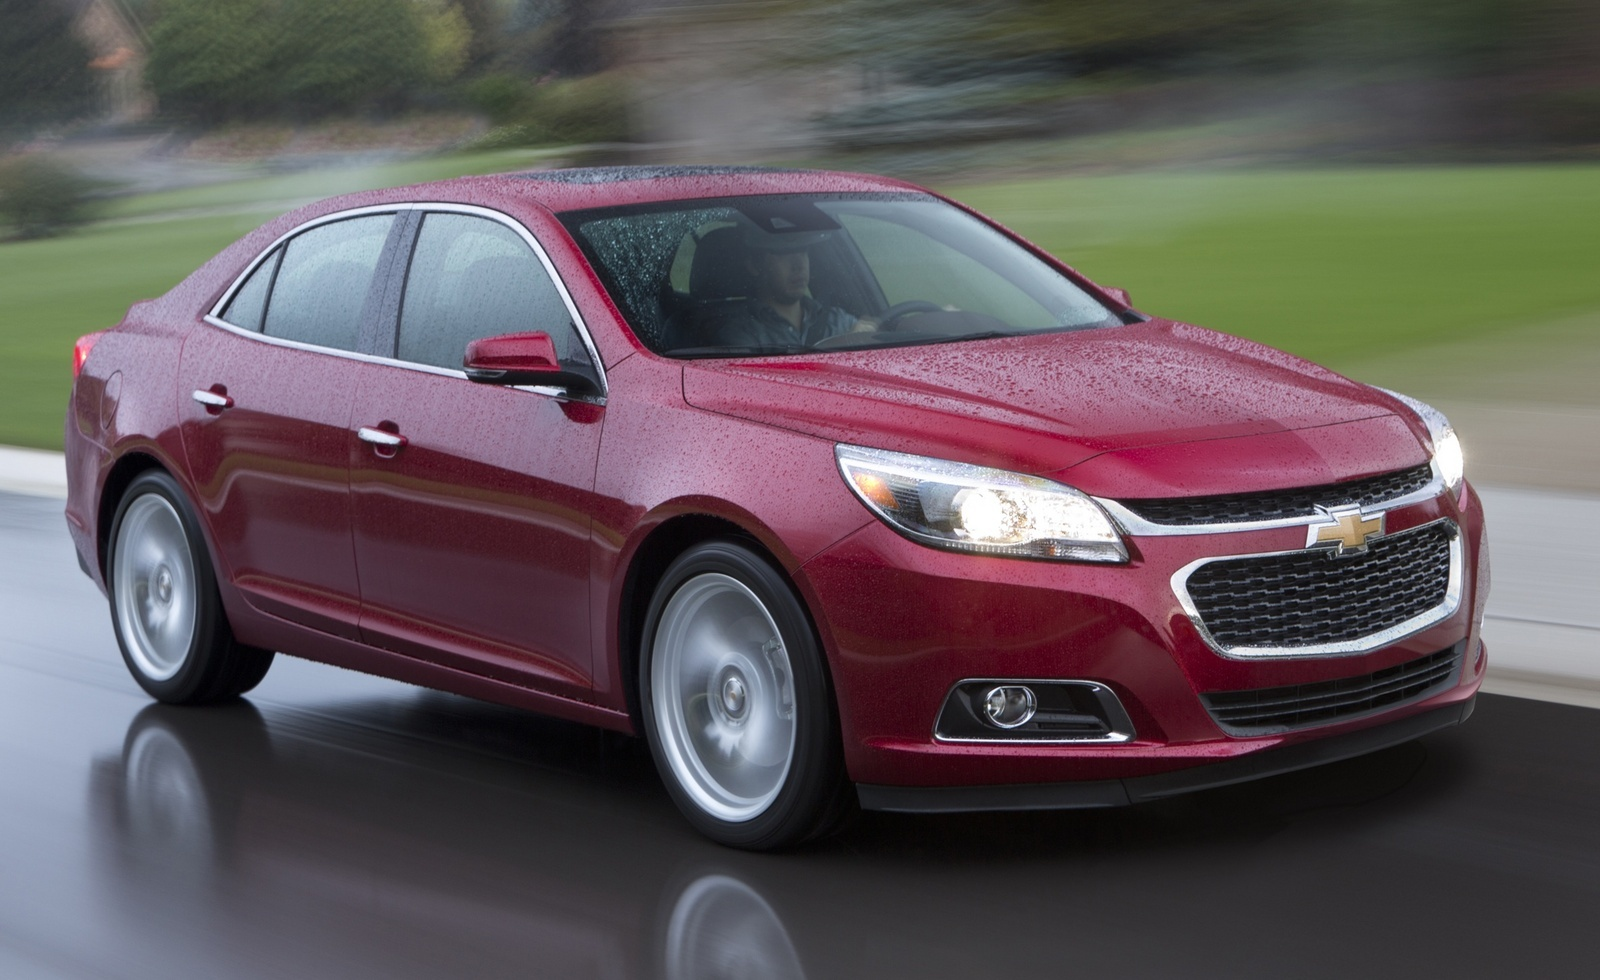 dsc the review about truth buick cars lacrosse